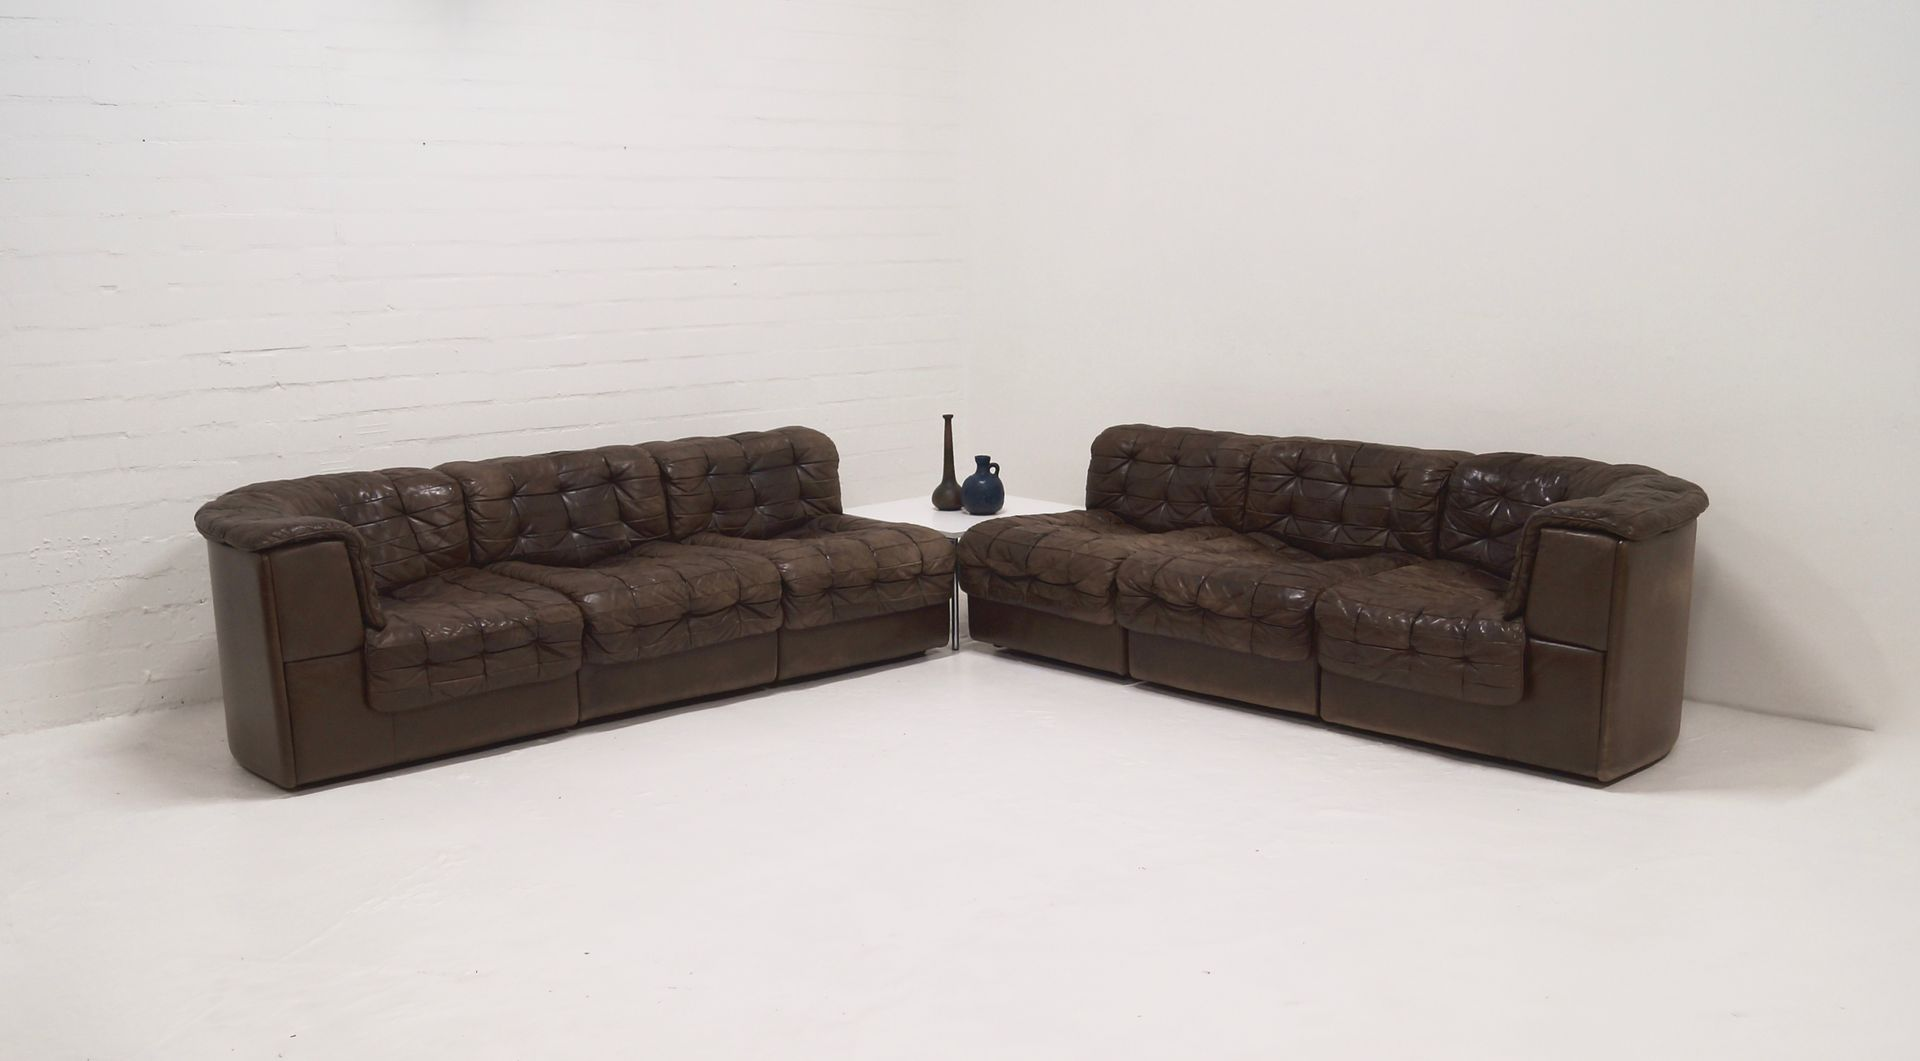 Ds 11 Leather Modular Sofa From De Sede 1970s For Sale At Pamono